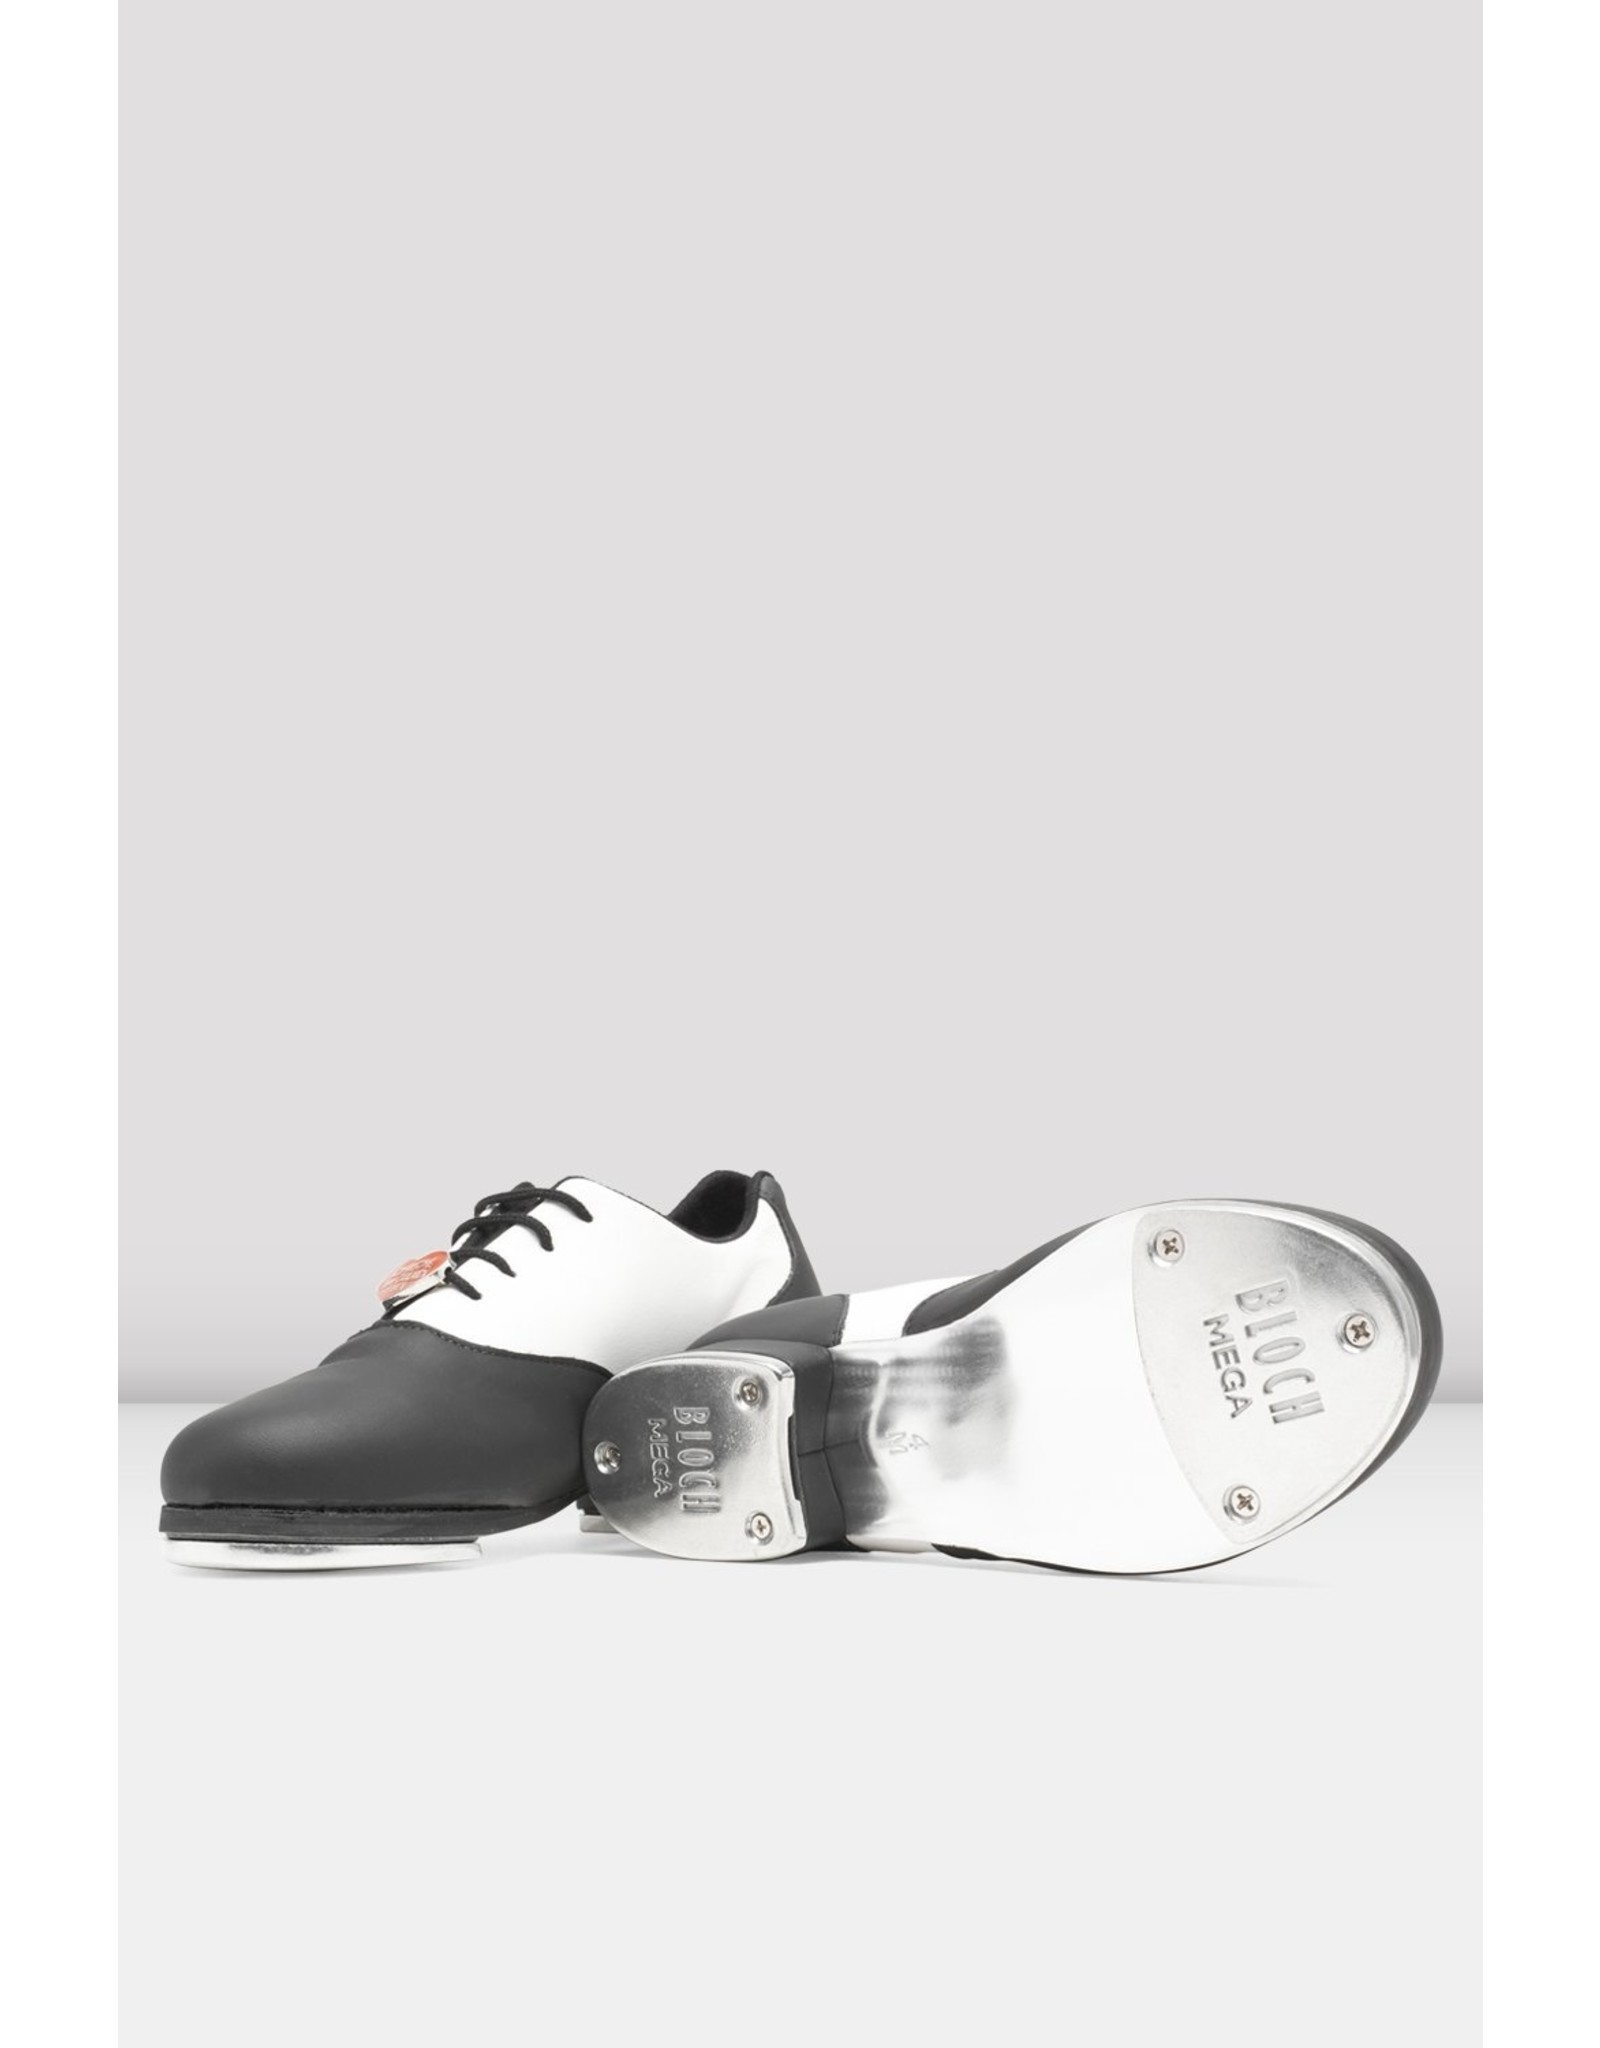 BLOCH CHLOE AND MAUDE TAP SHOE